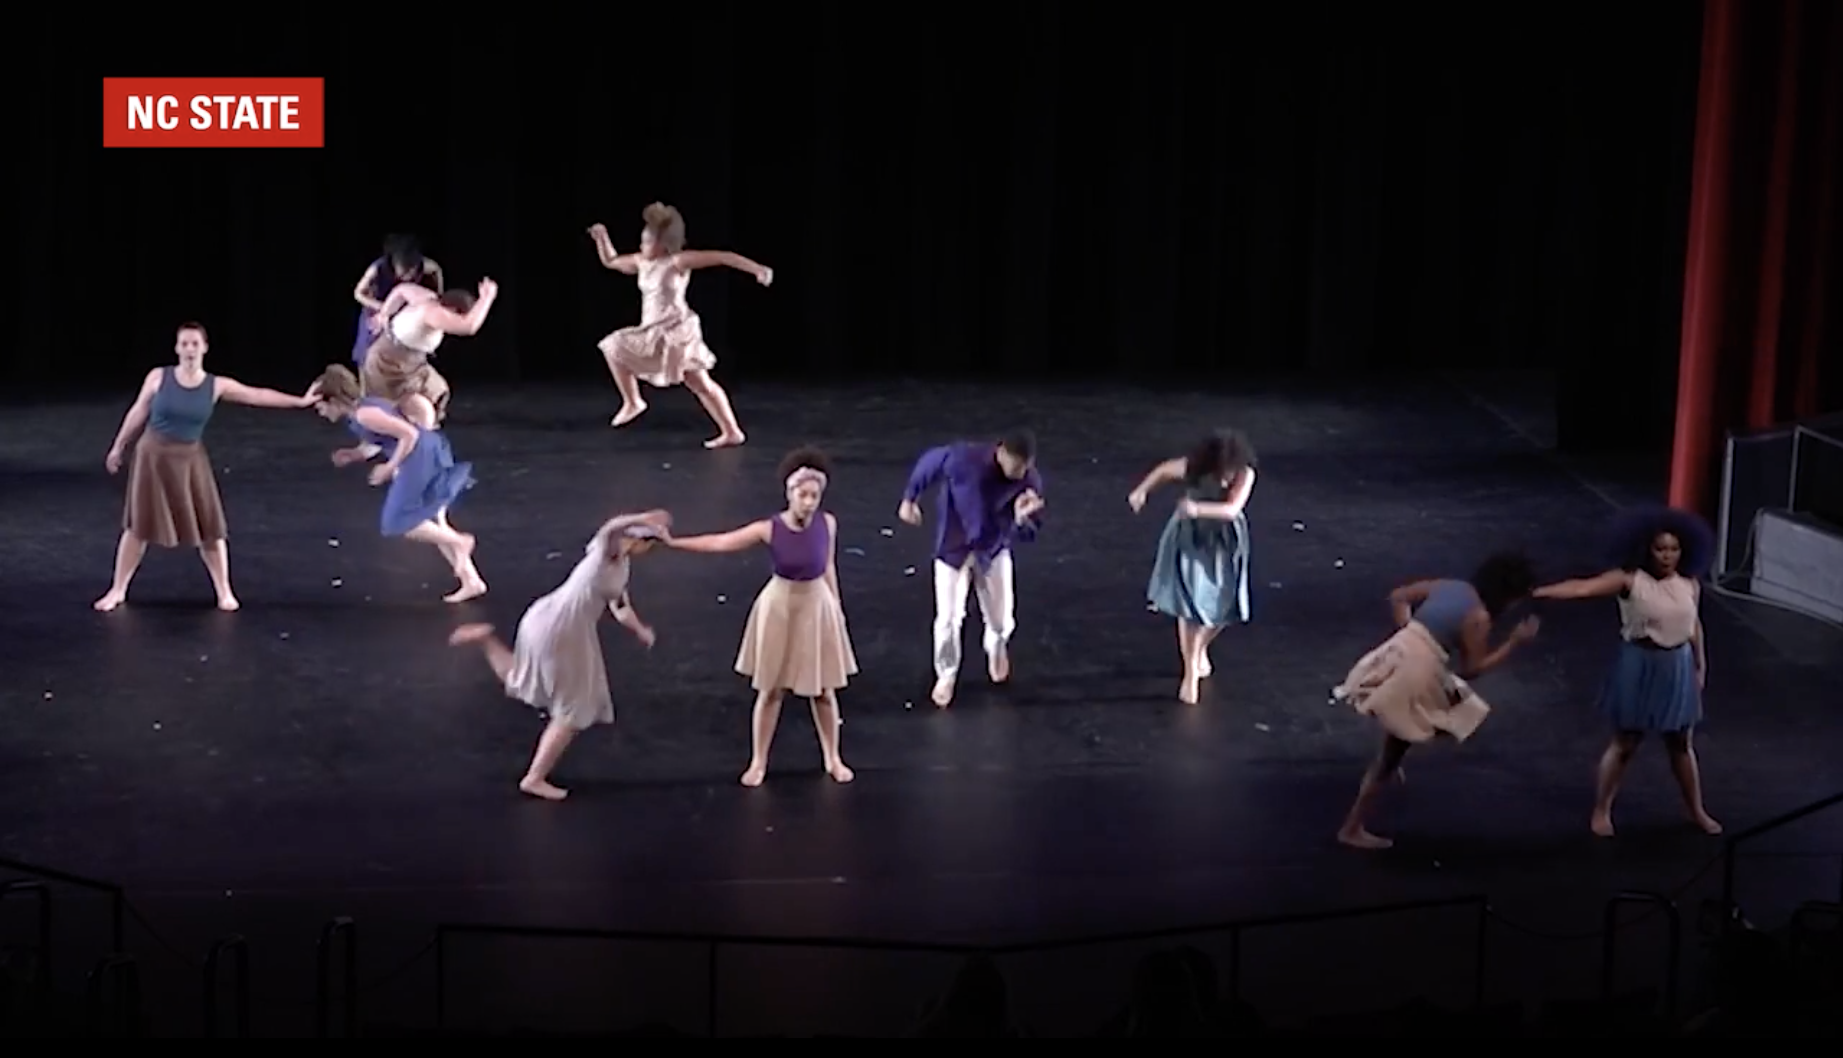 Students with the NC State Dance Program perform on stage.